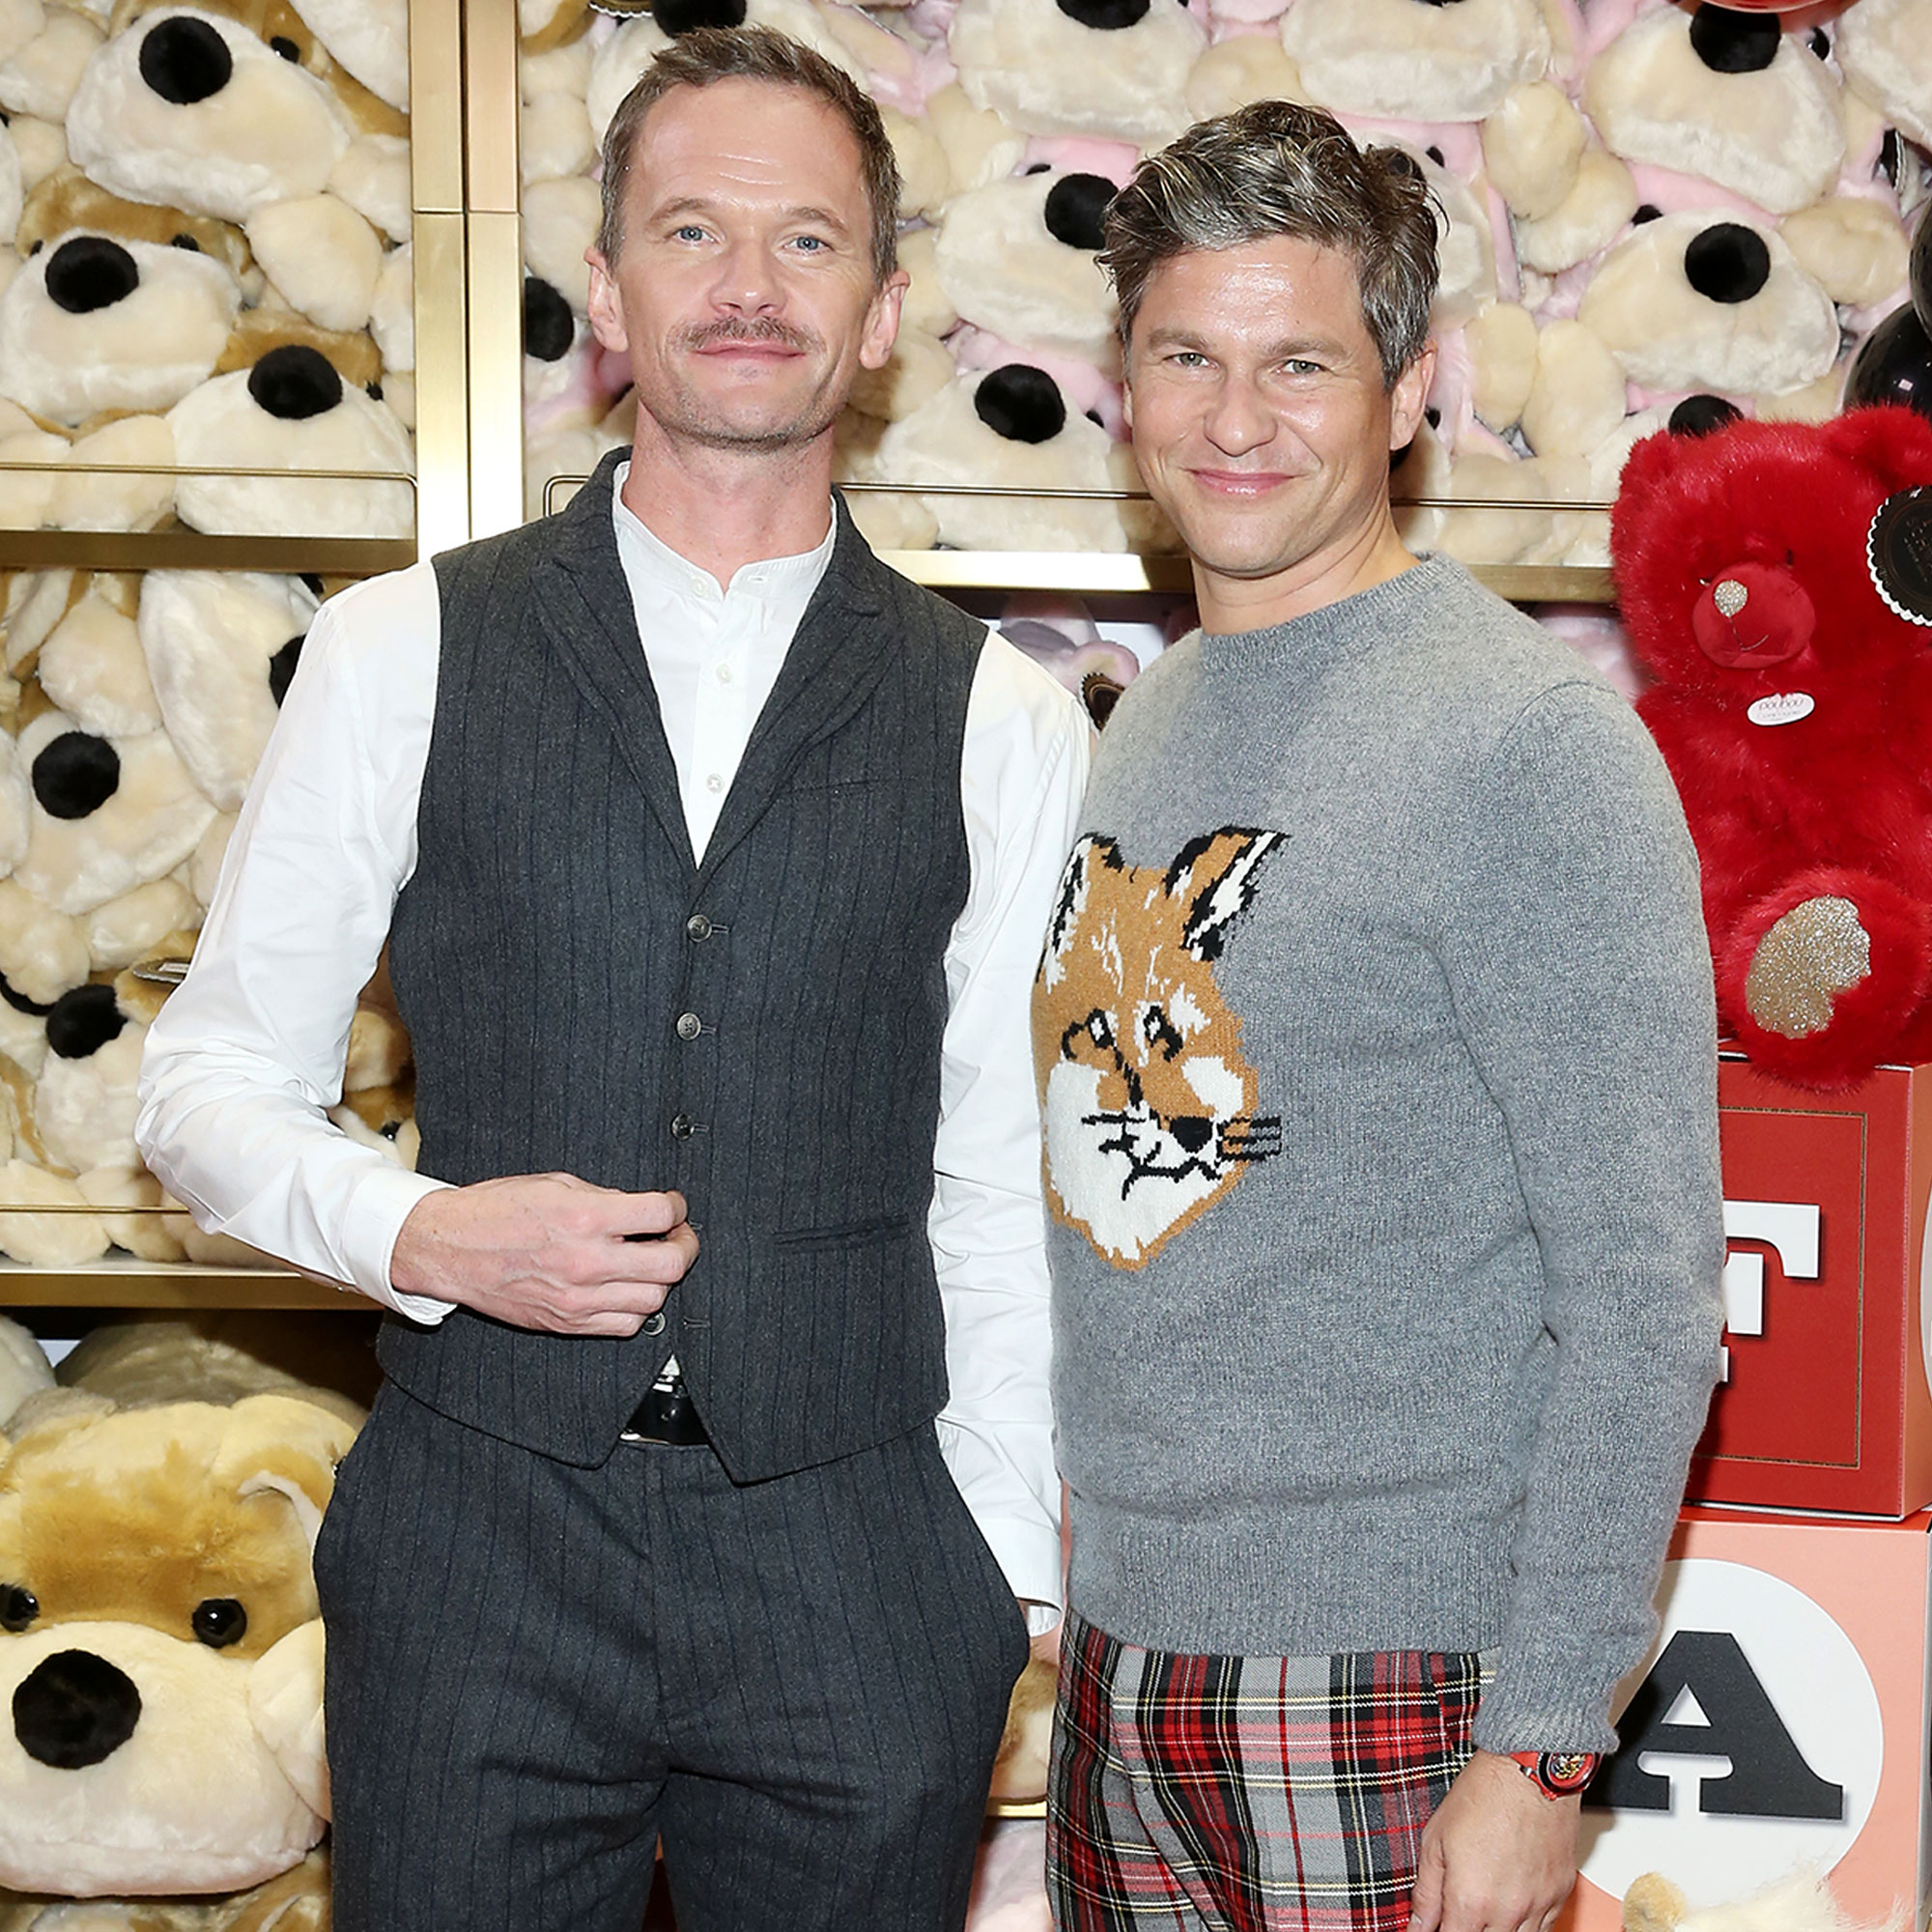 Santa's Naughty or Nice List - NEW YORK, NEW YORK – NOVEMBER 15: Neil Patrick Harris (L) and David Burtka attend the FAO Schwarz Grand Opening Event at Rockefeller Plaza on November 15, 2018 in New York City. (Photo by Monica Schipper/Getty Images)